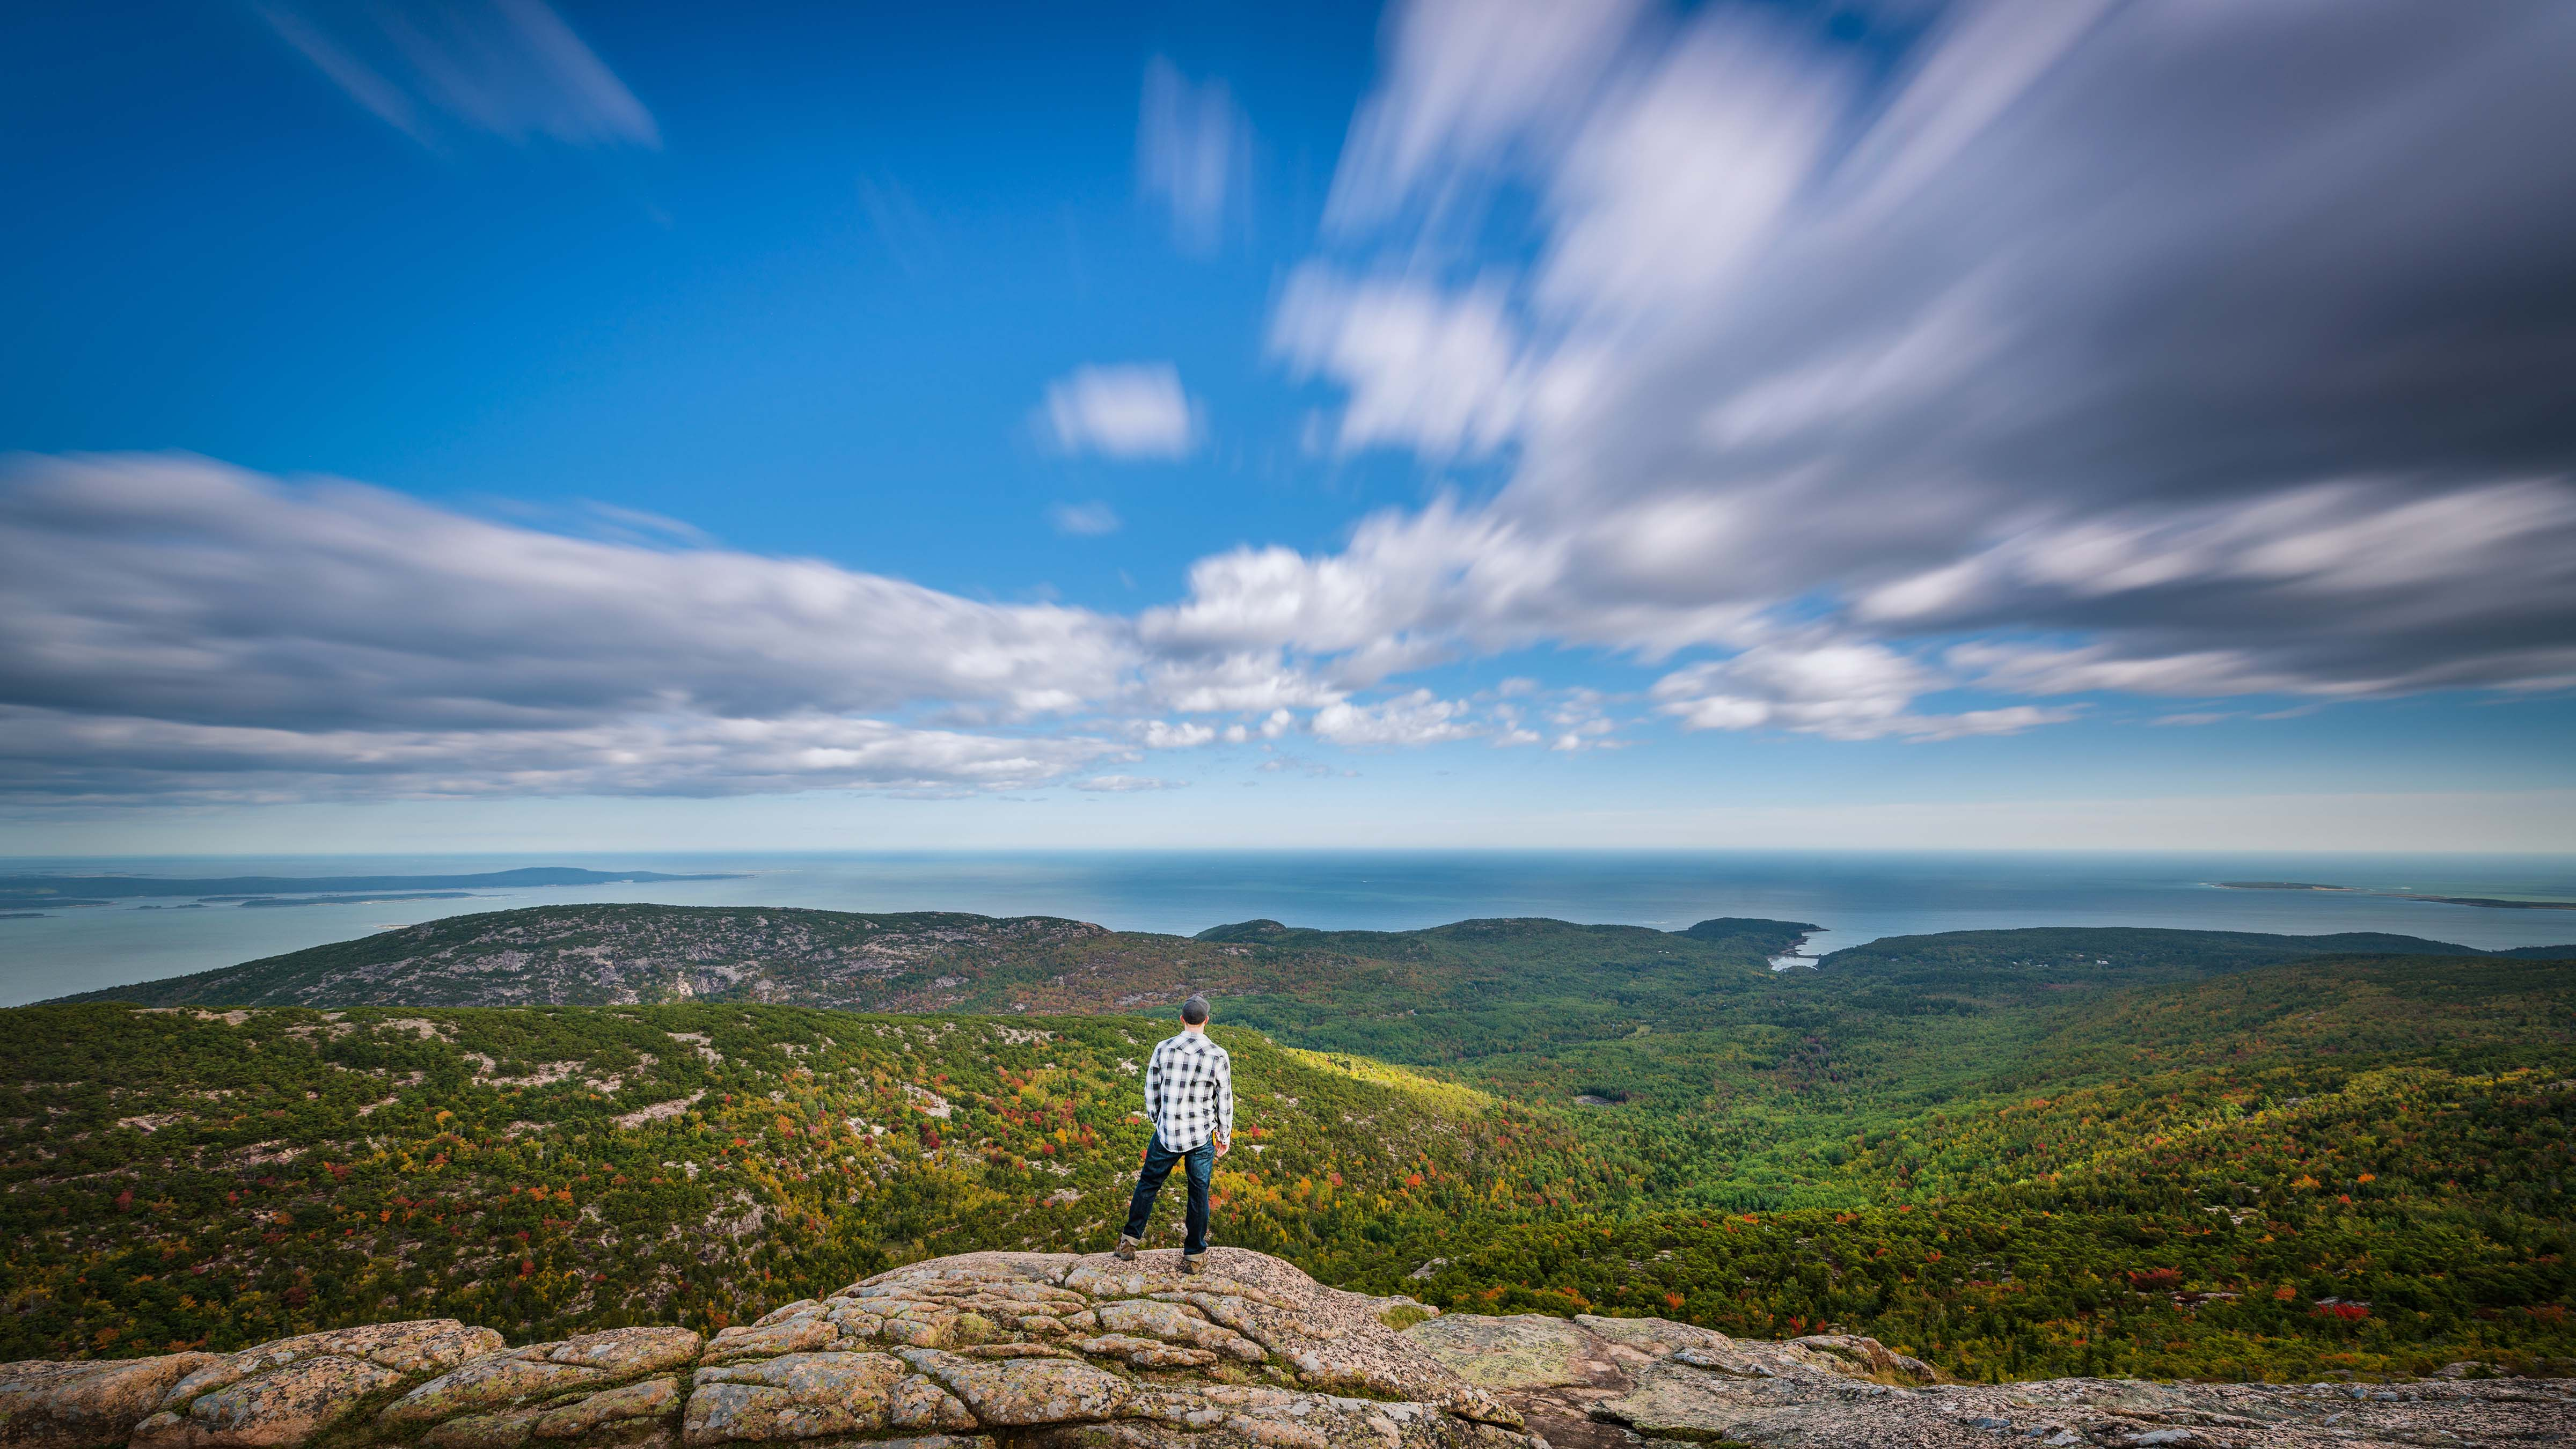 Coast of Maine — Man overlooks mountain vista as clouds race by.